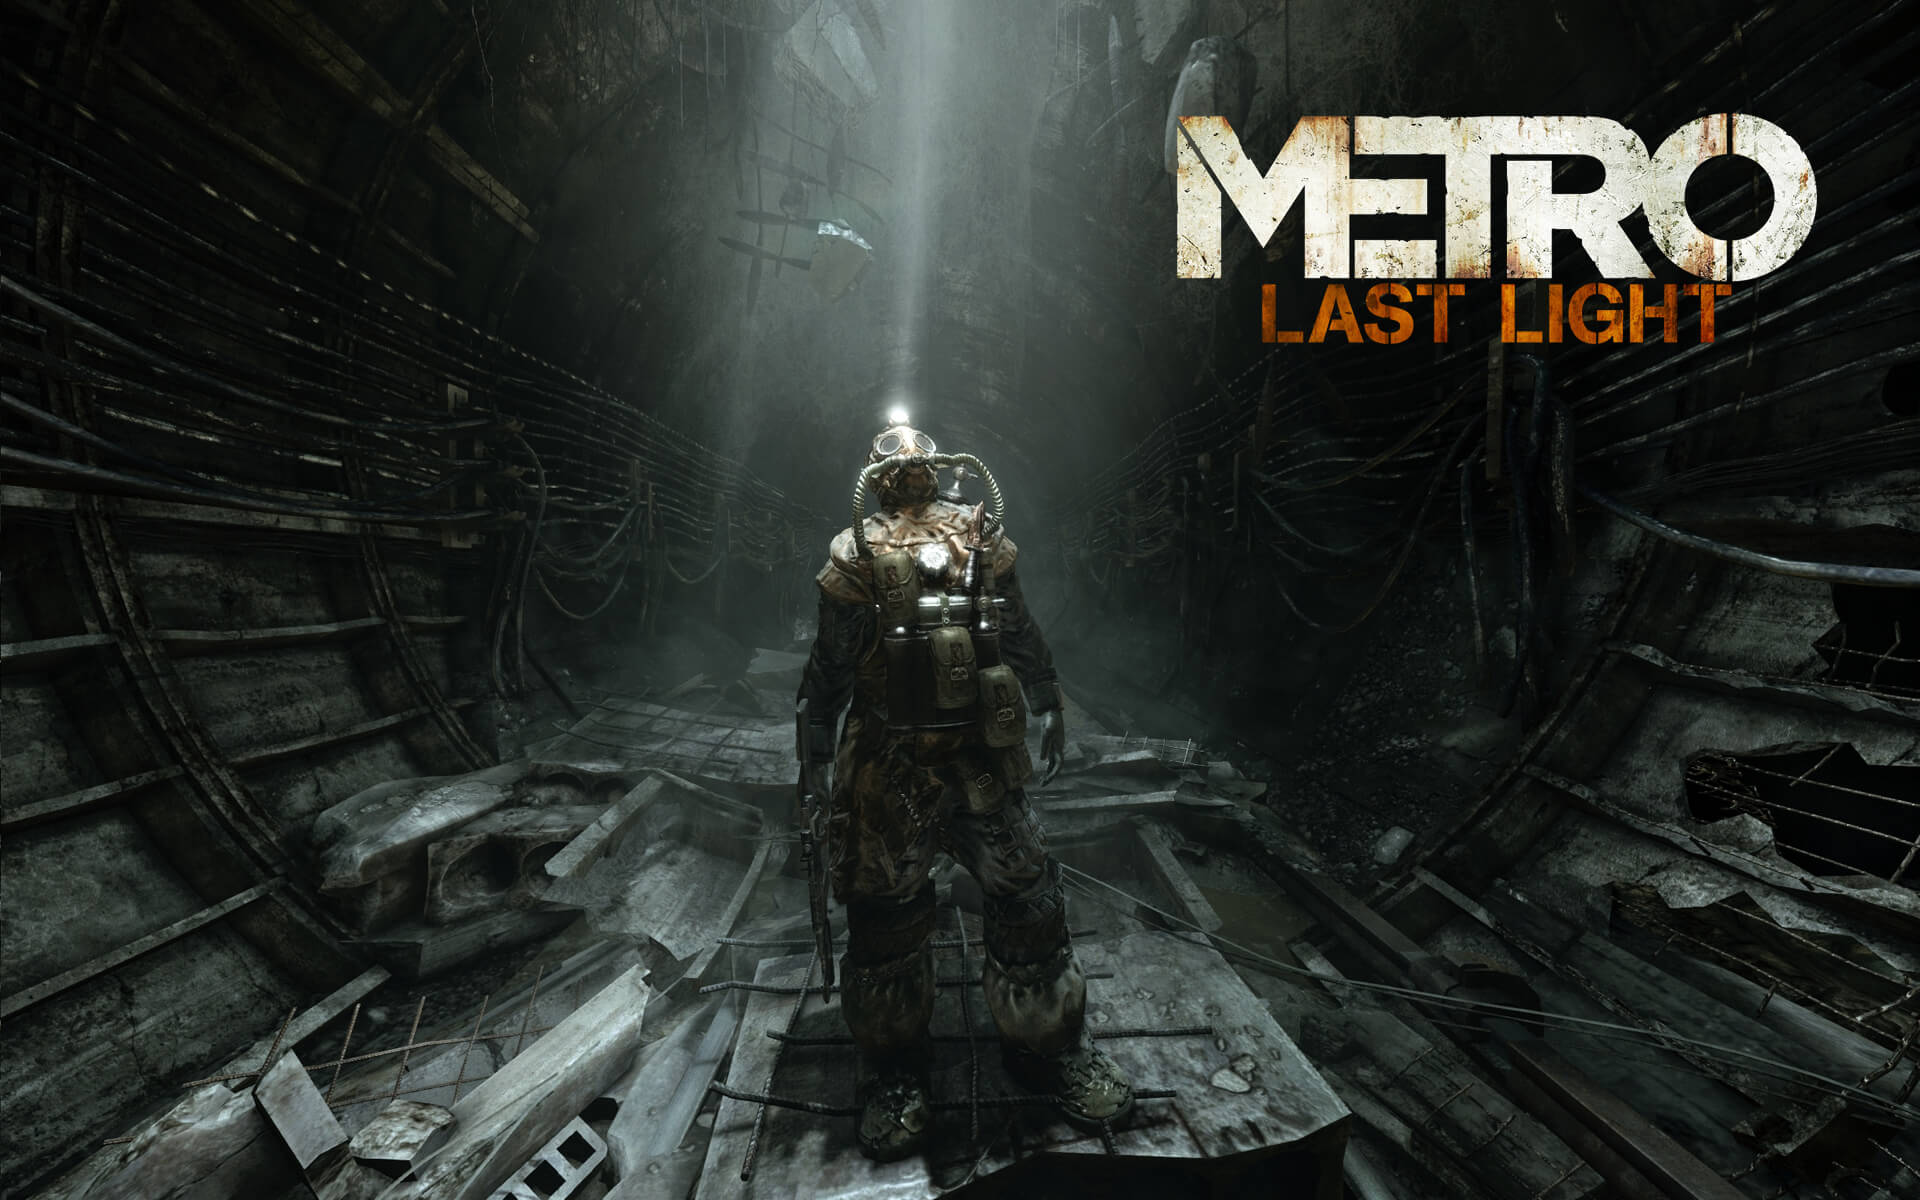 Destrohack-free: metro: last light hack cheats 2013 download.